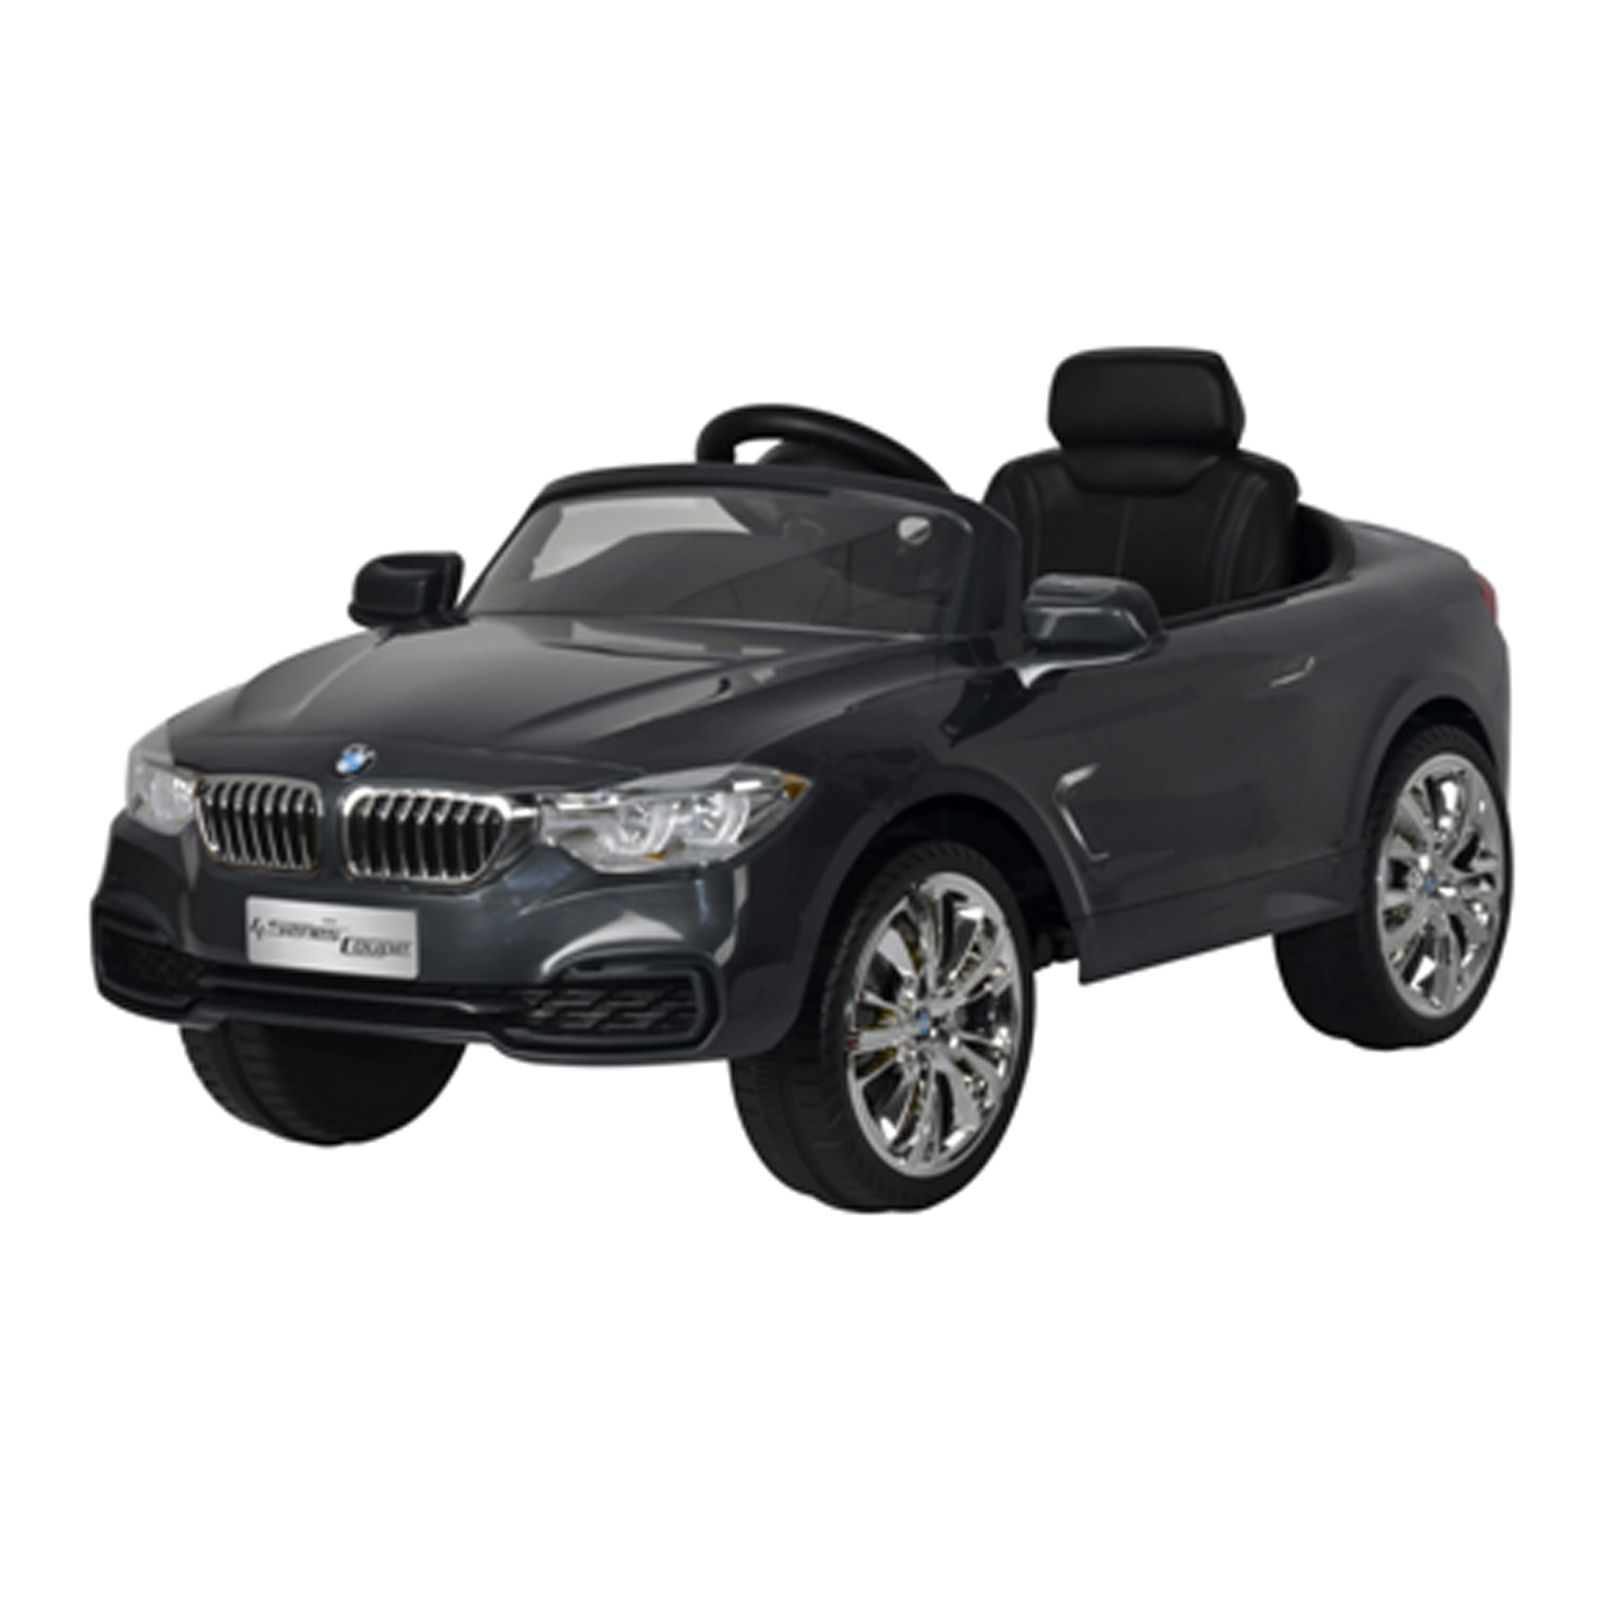 Two Seater Kids Car Elegant Bmw 4 Series 12v Kids Battery Powered